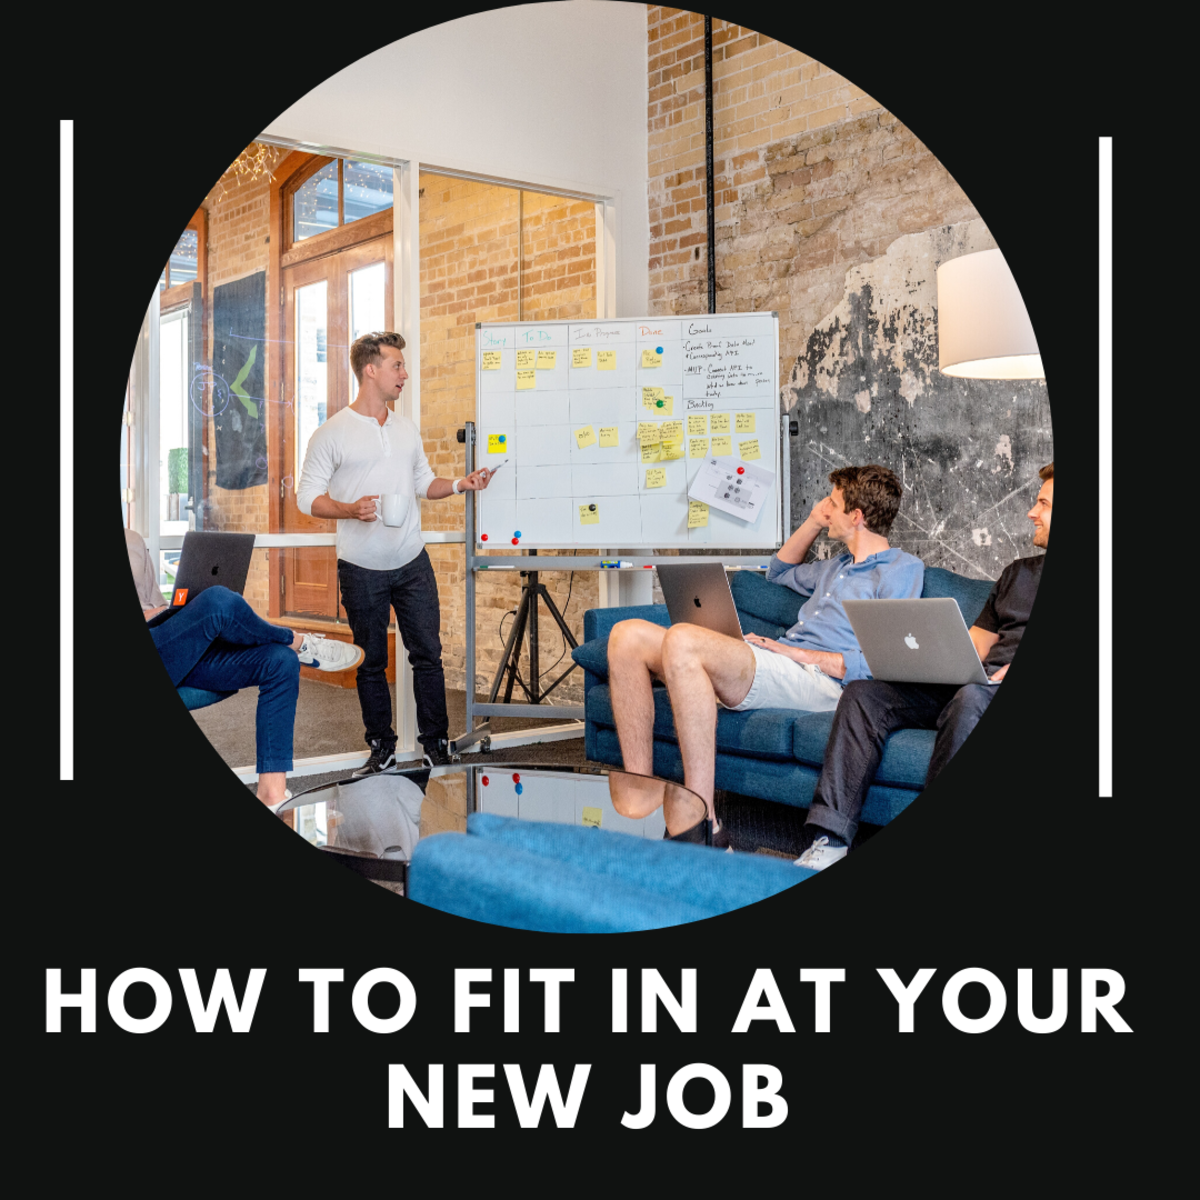 These tips on how to ease into a new job and get to know your new co-workers will help set you up for success!